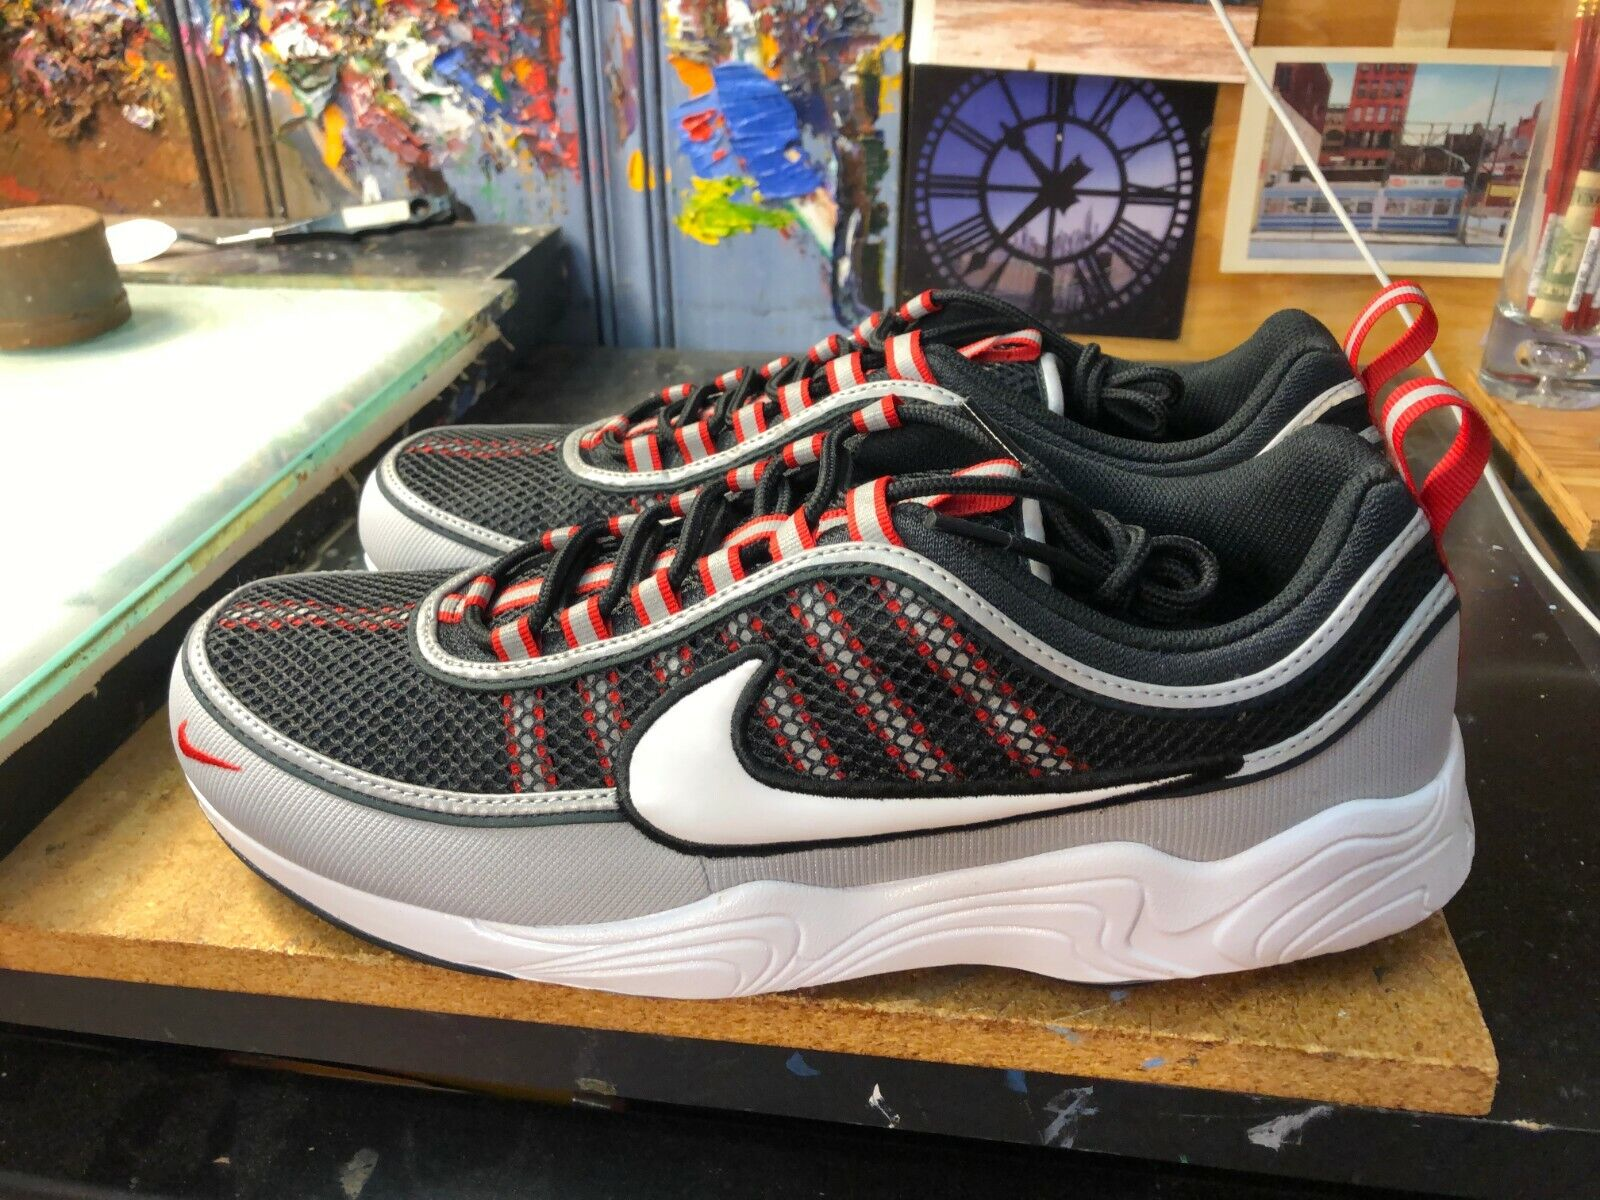 Nike Air Zoom Spiridon '16 Black White-Wolf Grey Size US 13 Men 926955 010 New